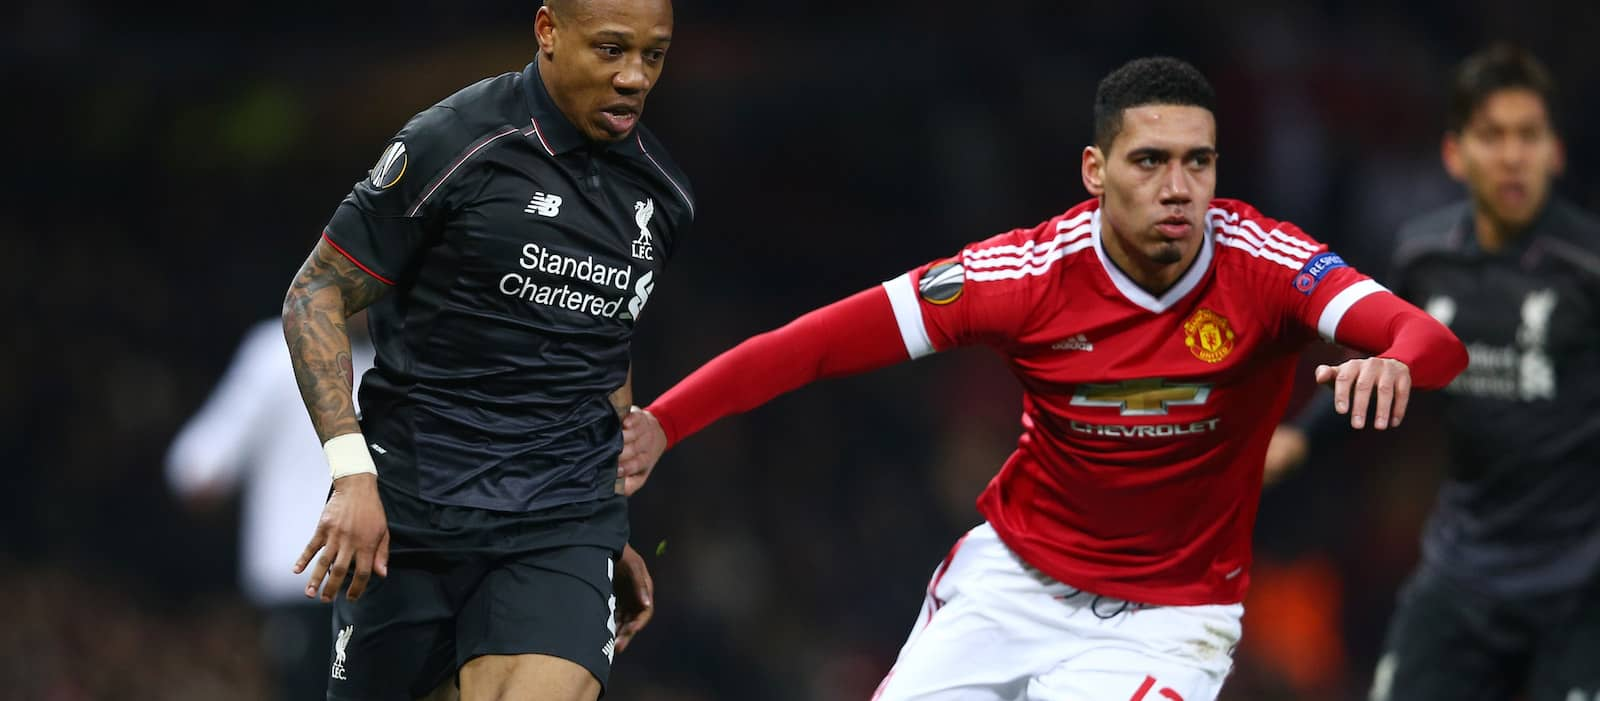 Chris Smalling named Man United's Players' Player of the Year